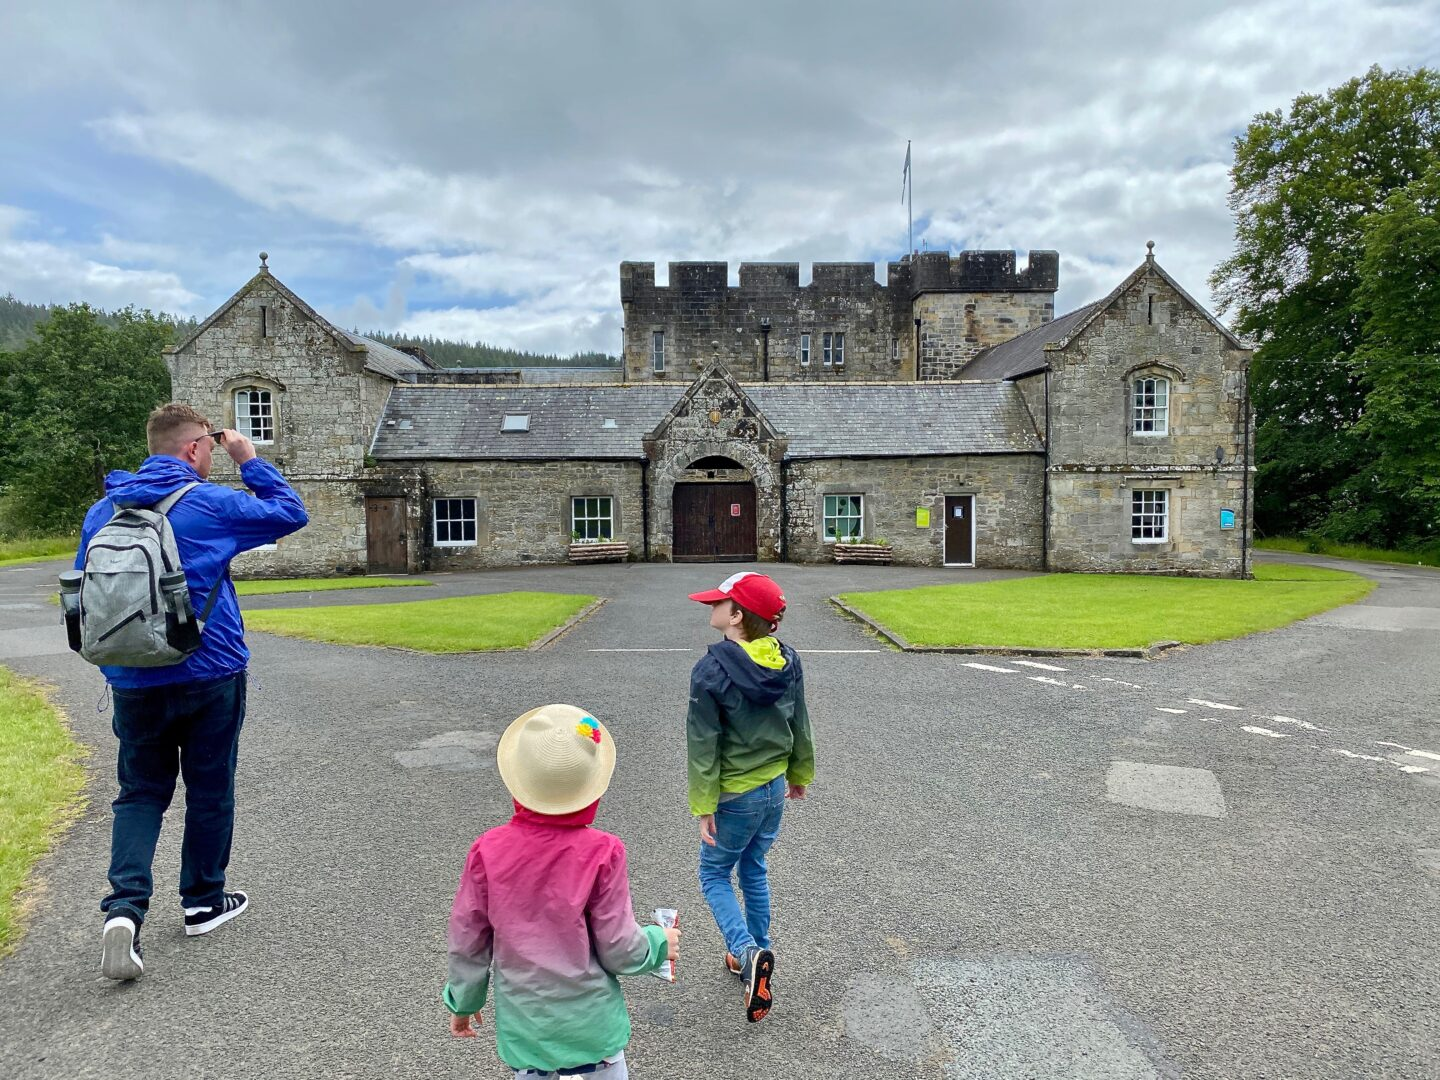 A picture of Kielder castle with a man and 2 children